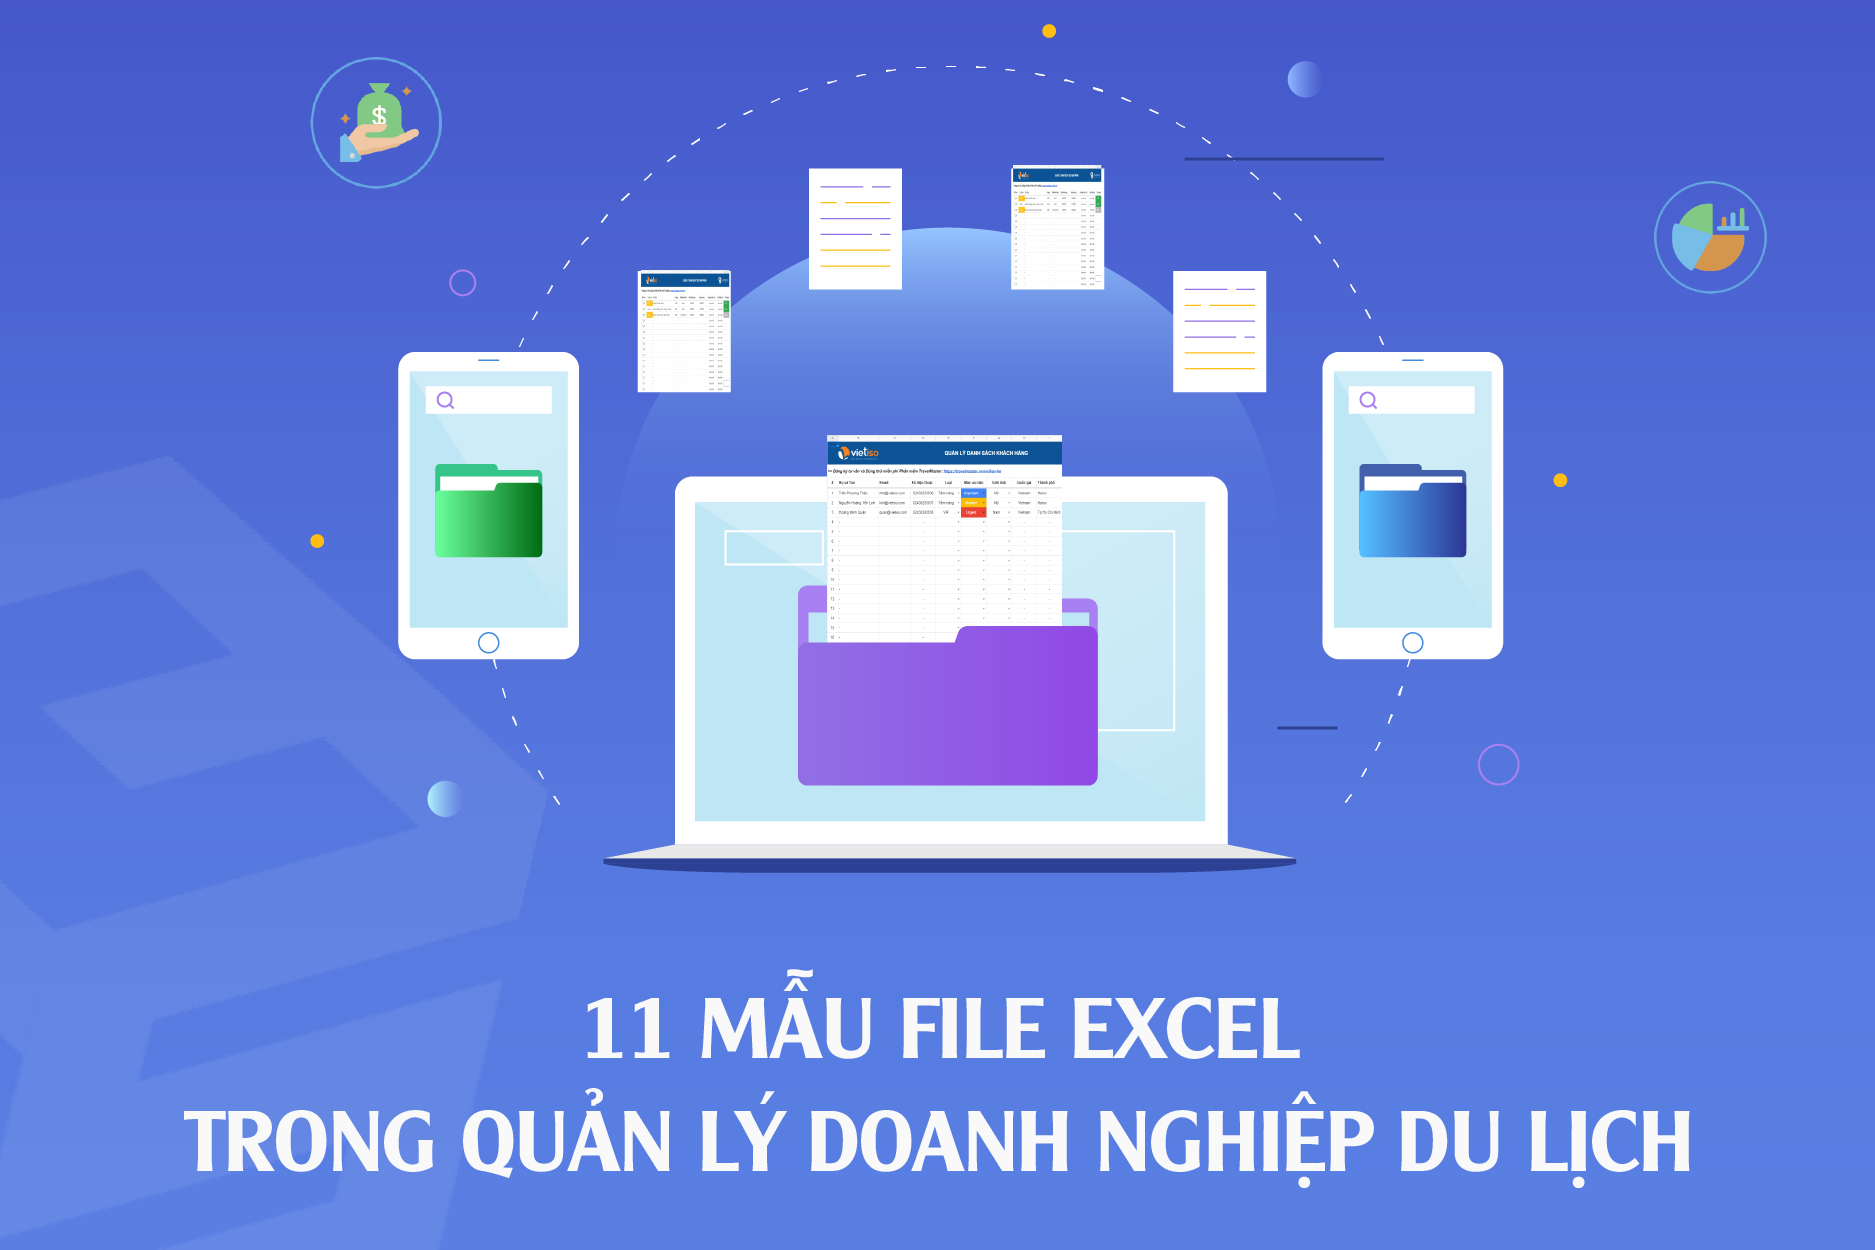 Tong hop cac file excel quan ly doanh nghiep du lich-02-01-01